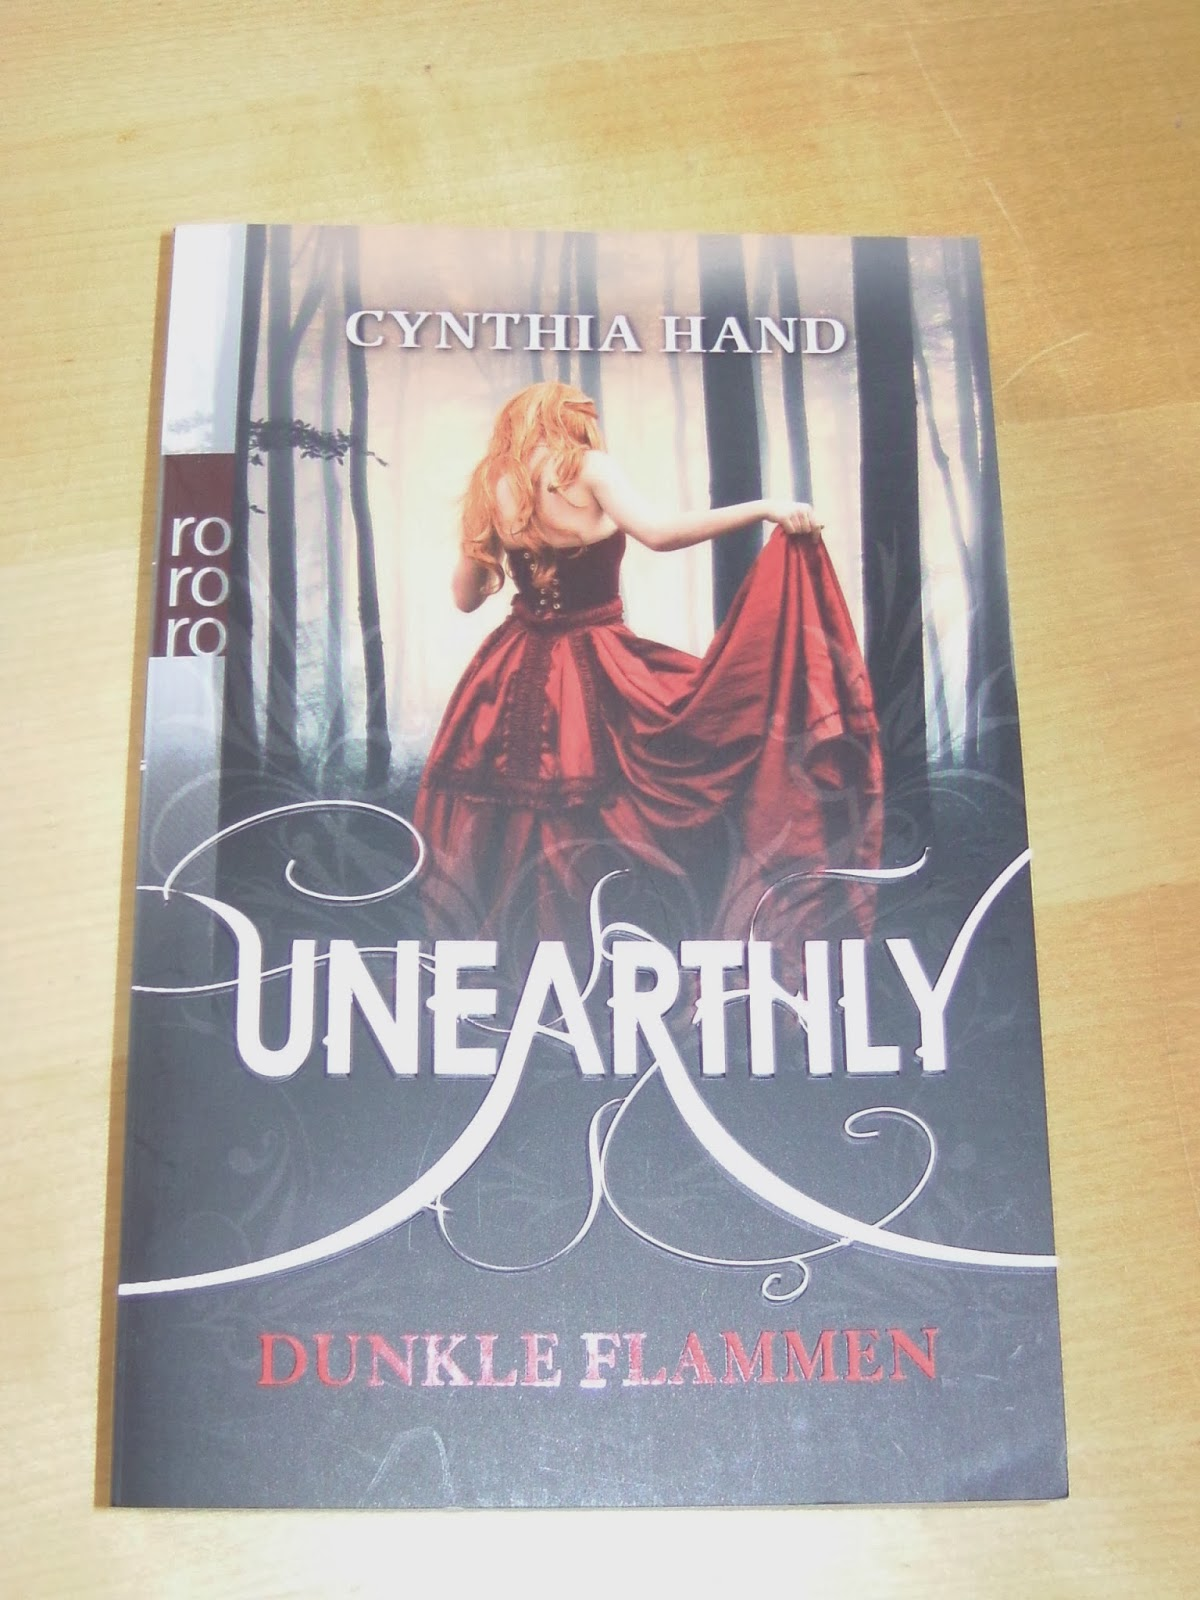 http://www.amazon.de/Unearthly-Dunkle-Flammen-Cynthia-Hand/dp/3499256983/ref=sr_1_1?s=books&ie=UTF8&qid=1391198327&sr=1-1&keywords=unearthly+1